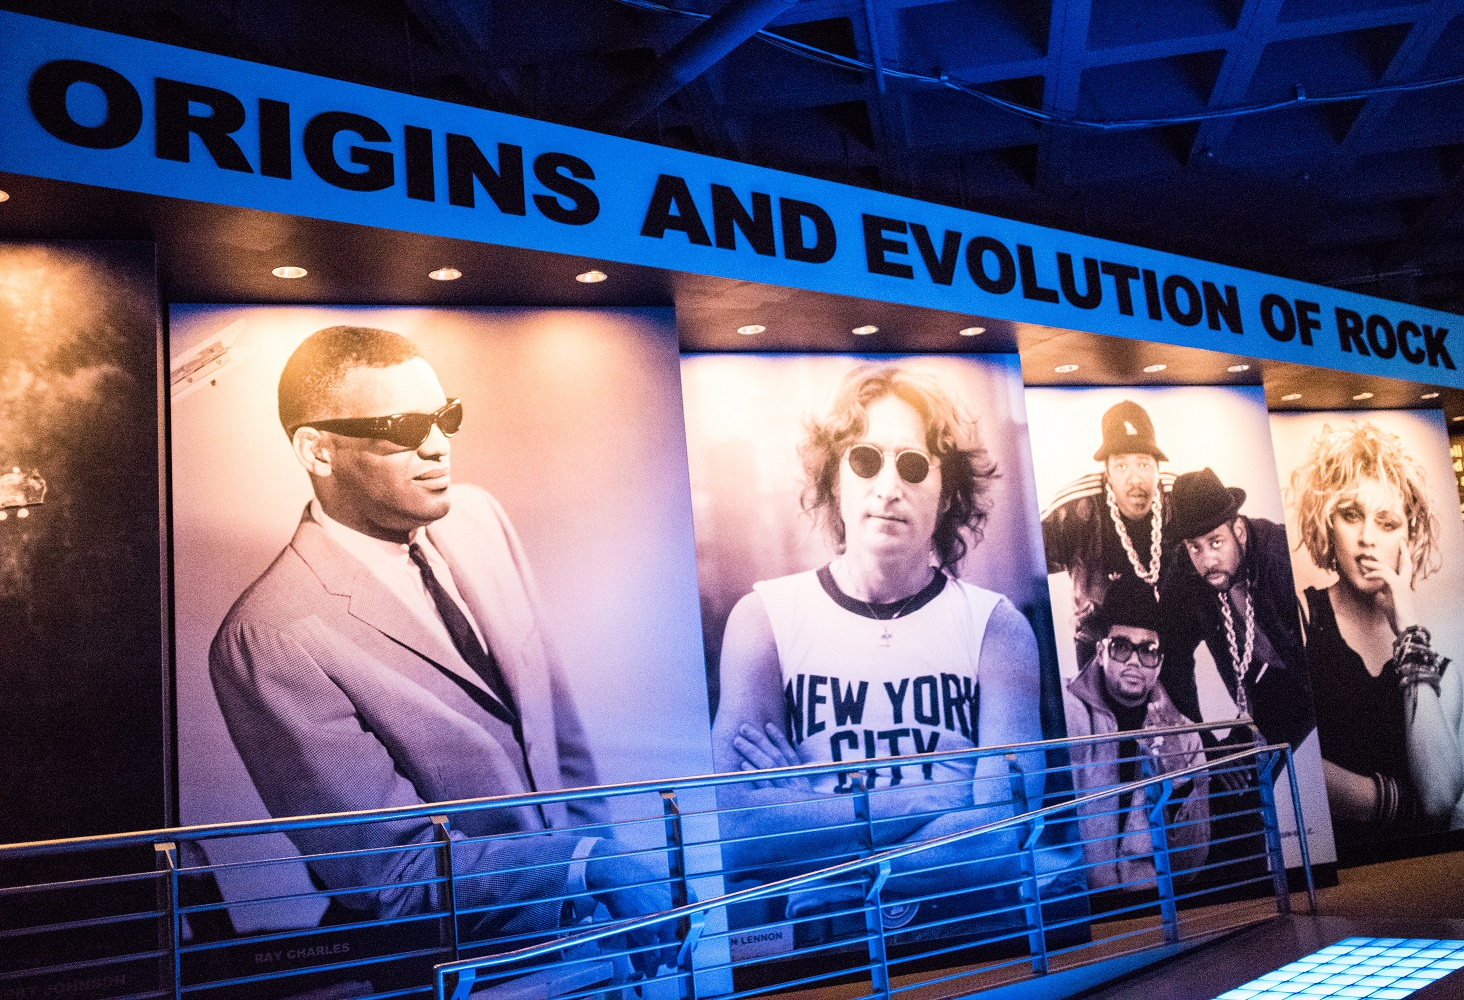 Reference image: Main lower entrance, Rock and Roll Hall of Fame Japan